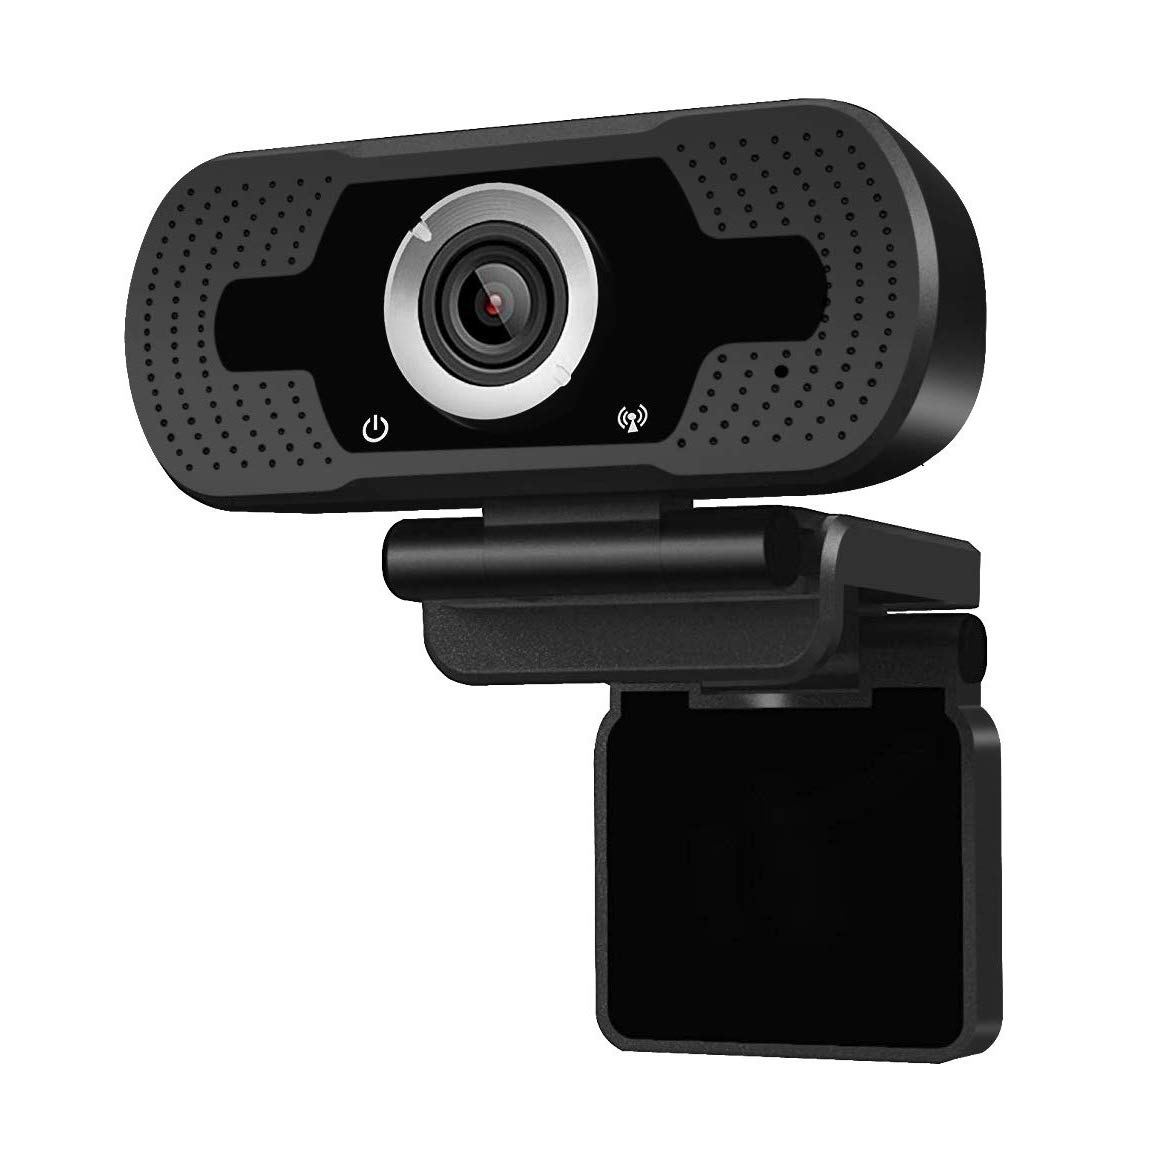 Anivia 1080p HD Webcam W8, USB Desktop Laptop Camera, Mini Plug and Play Video Calling Computer Camera, Built-in Mic, Flexible Rotatable Clip by Anivia